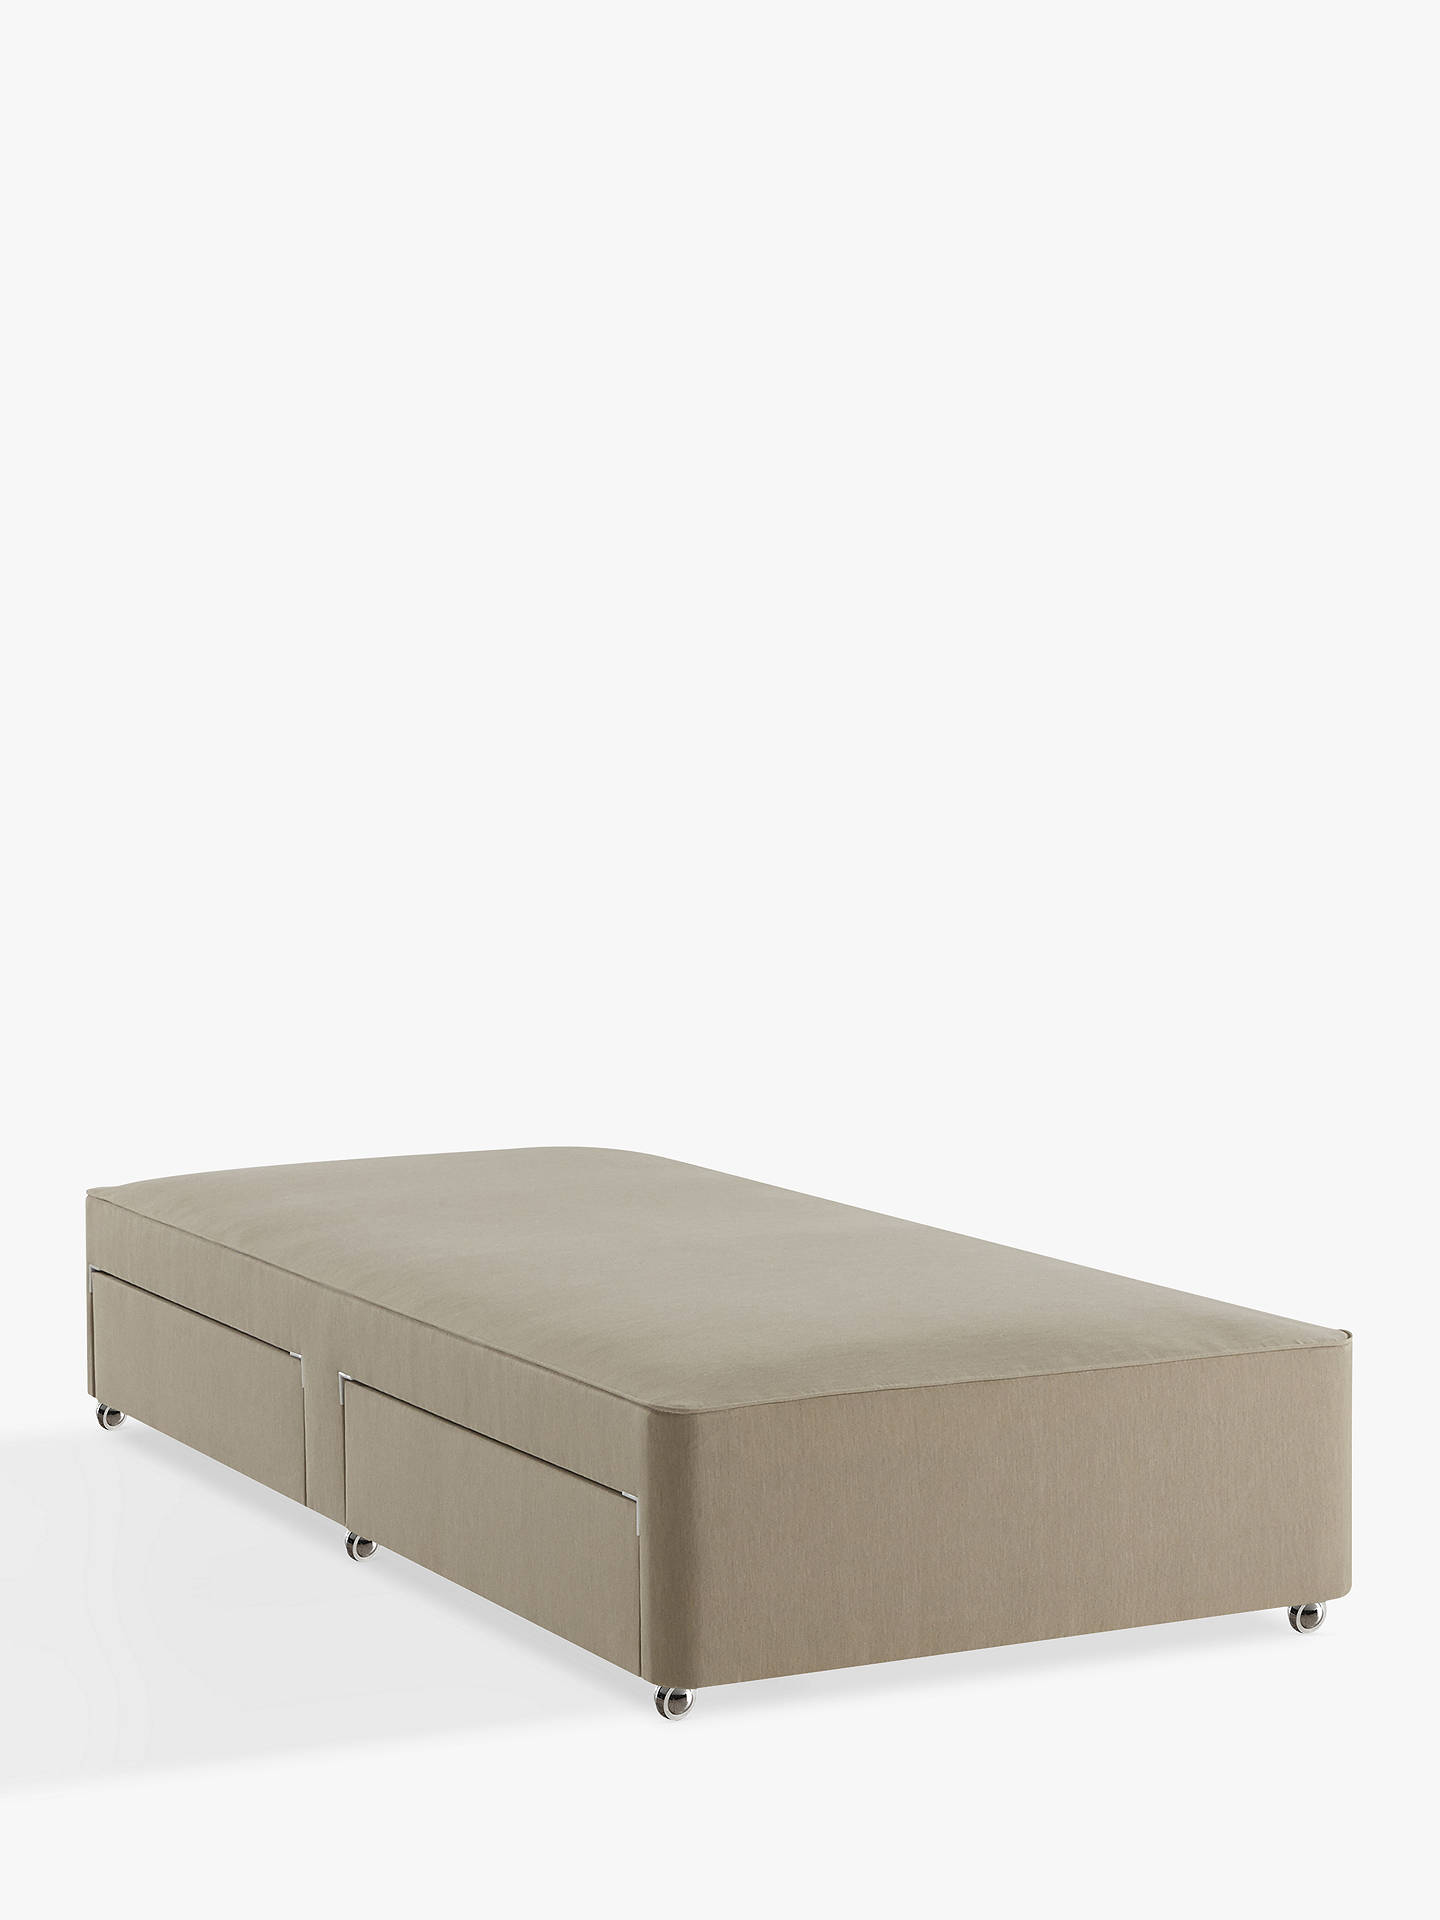 BuyJohn Lewis & Partners Natural Collection Pocket Spring 2 Drawer Divan Storage Bed, FSC-Certified (Spruce, Fiberboard, Plywood), Single, Canvas Pebble Online at johnlewis.com